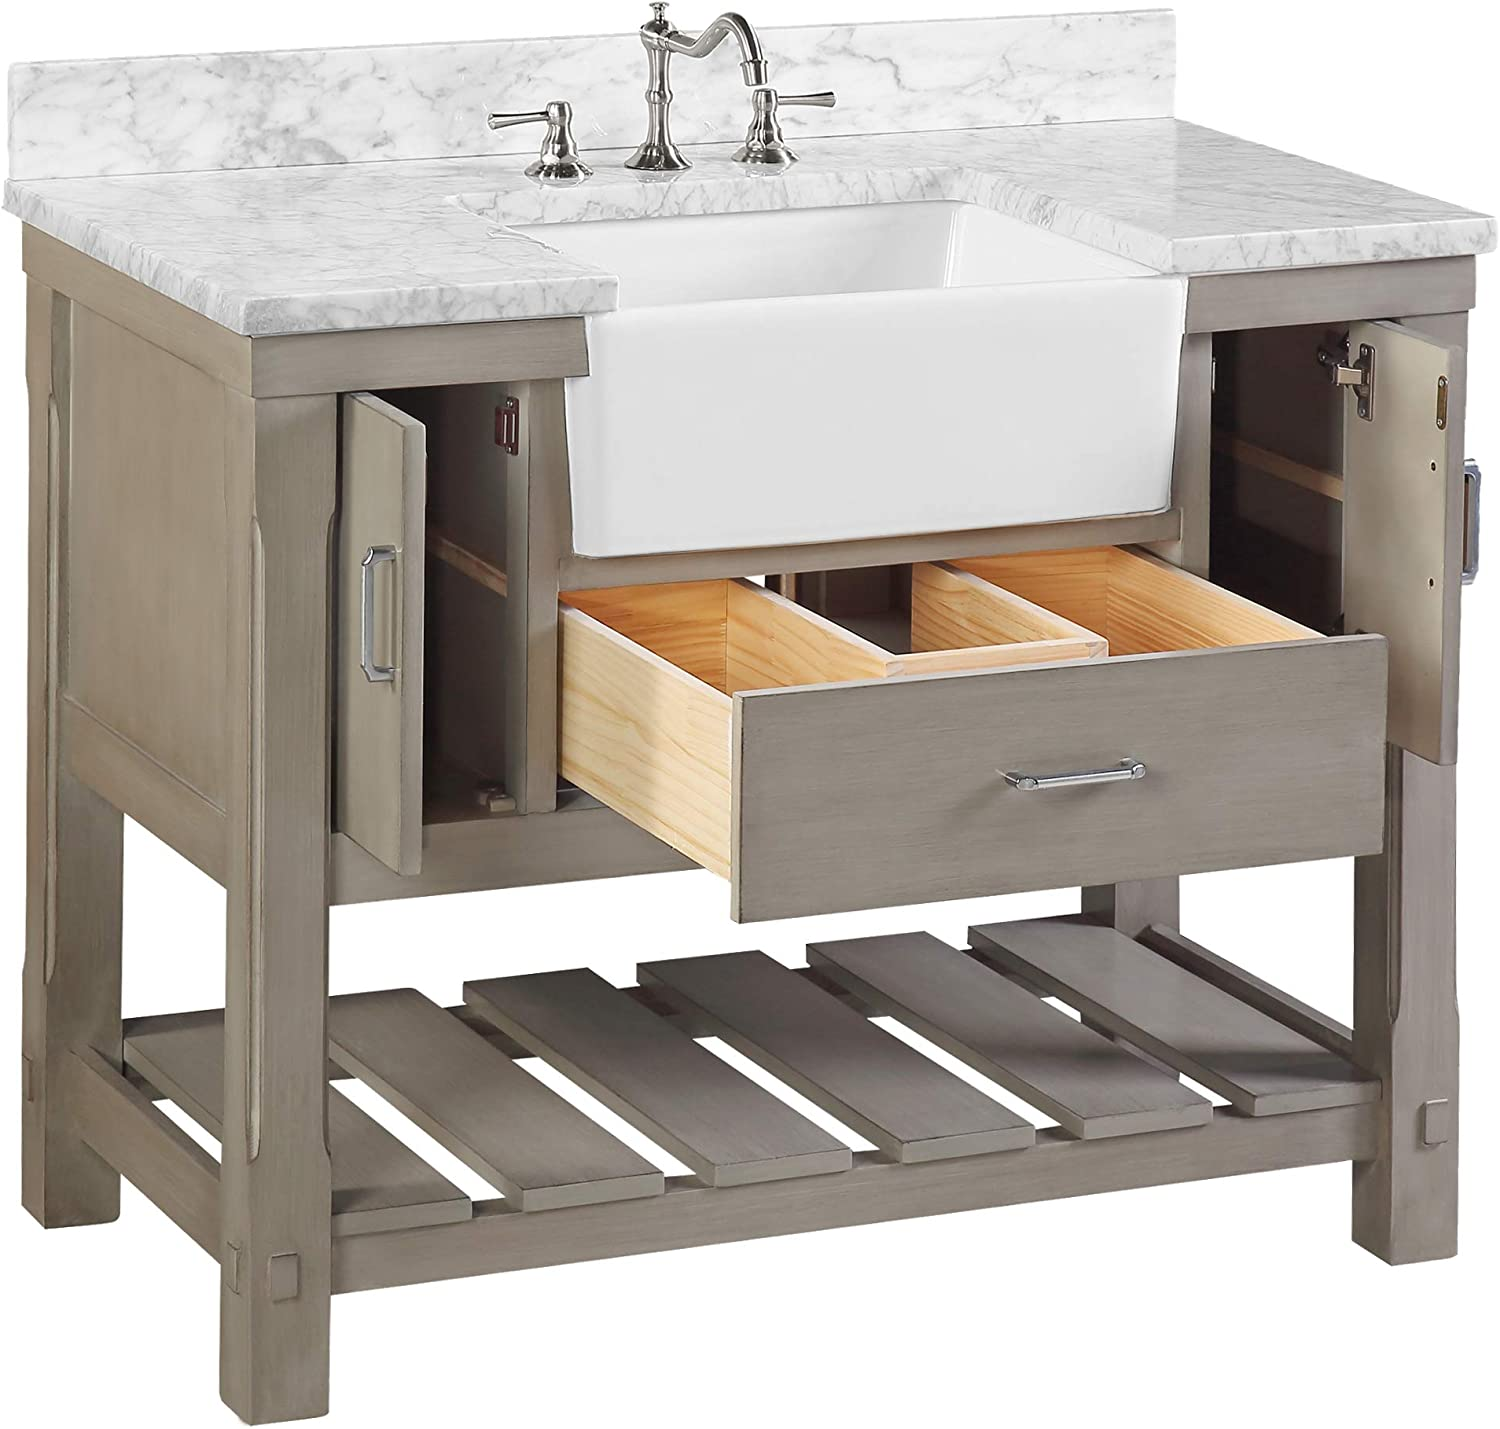 And White Ceramic Farmhouse Apron Sink Zelda 36 Inch Bathroom Vanity Includes A Carrara Marble Countertop Carrara Powder Gray Powder Gray Cabinet With Soft Close Doors Drawers